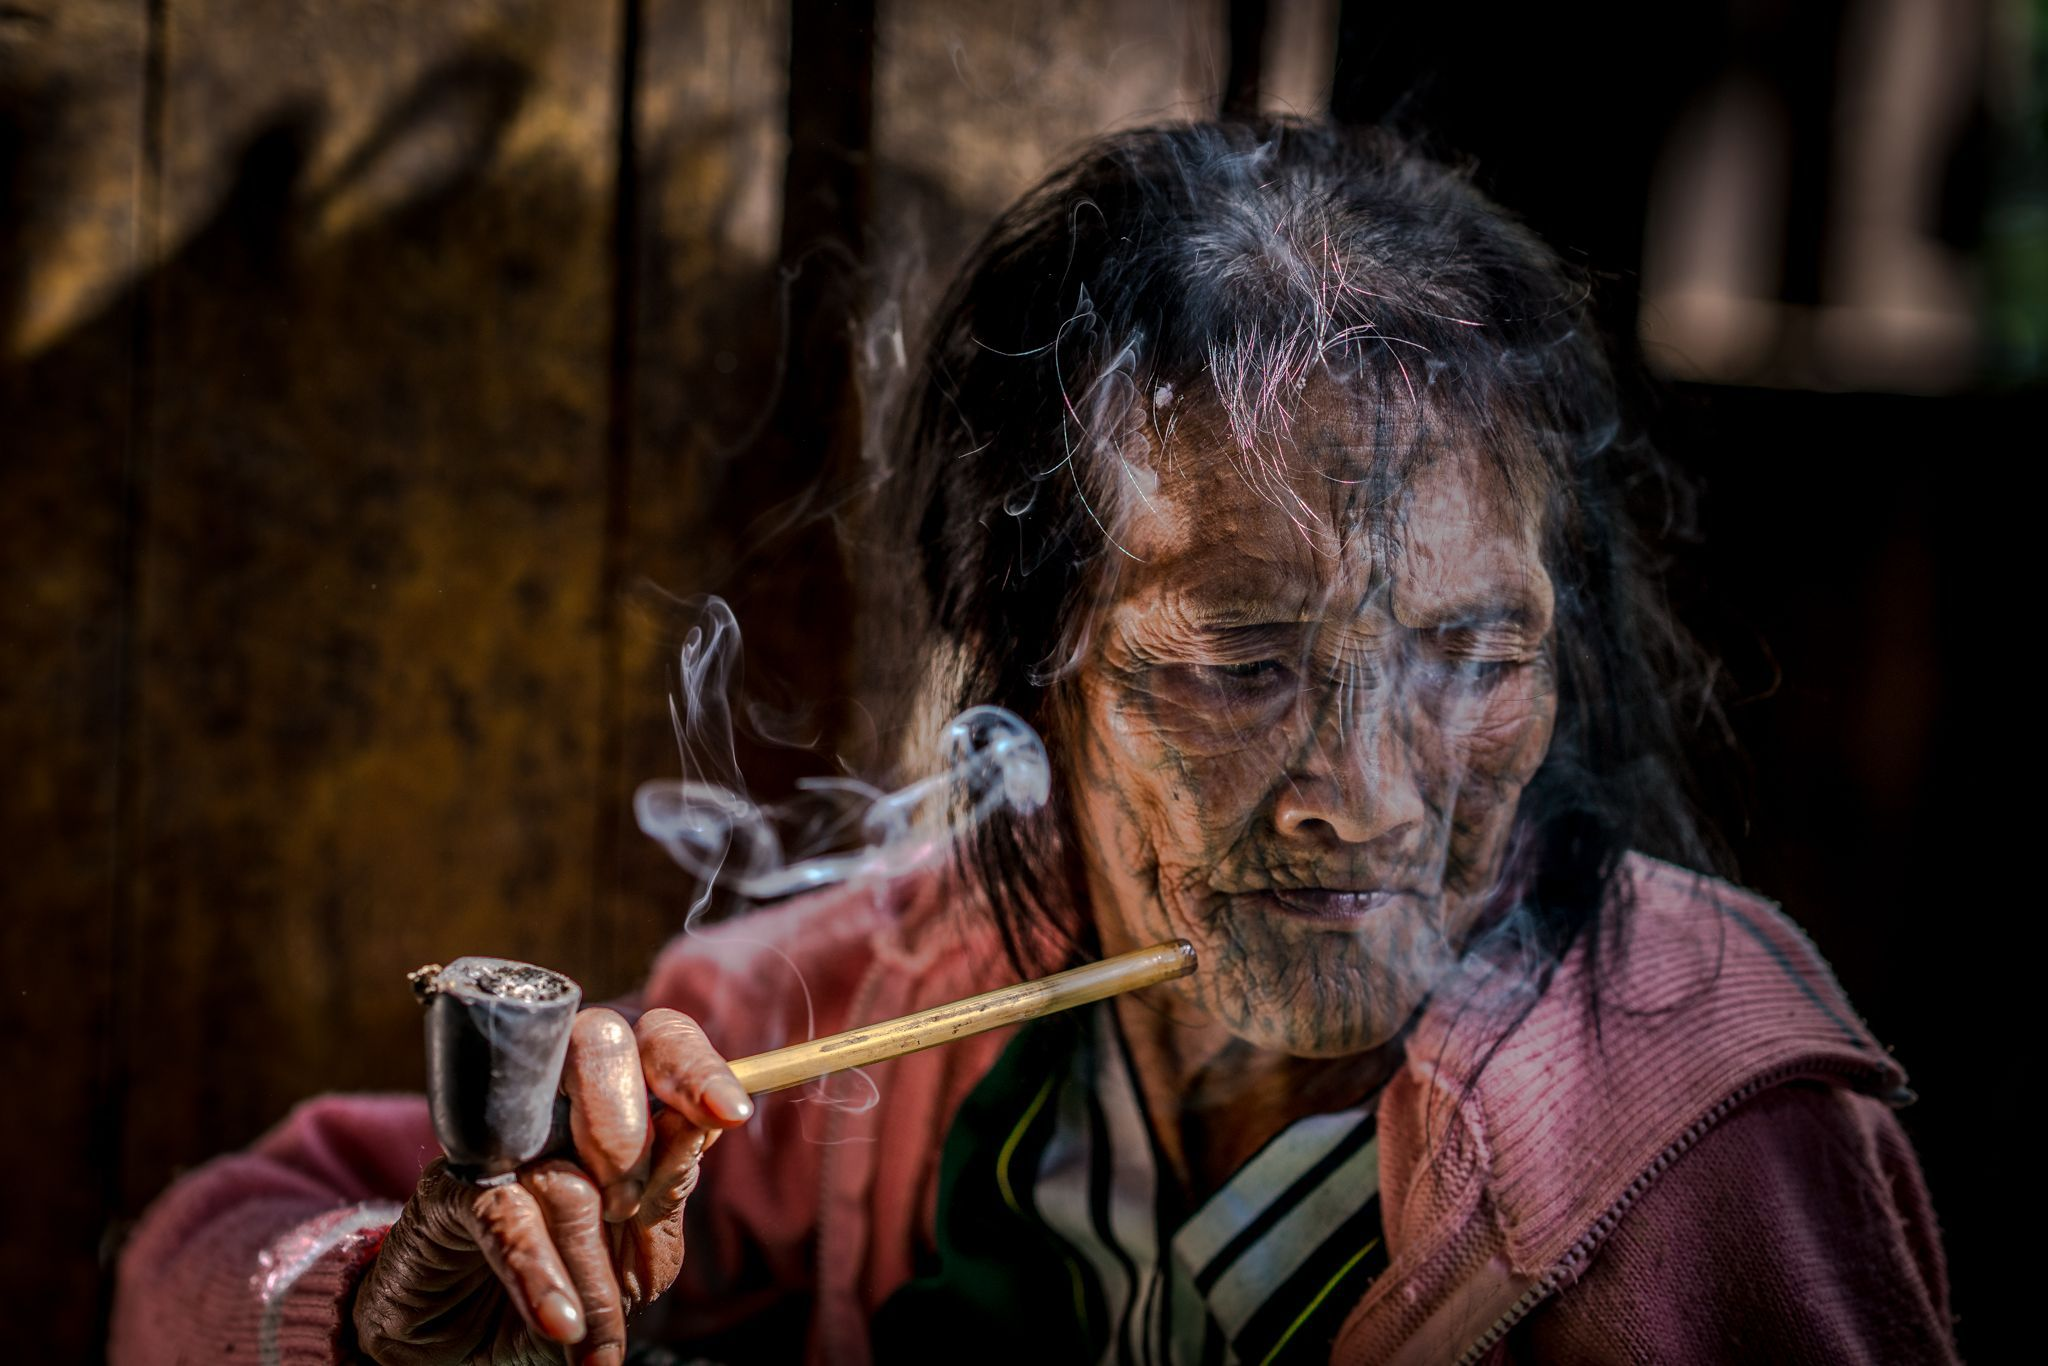 "An elderly woman in Myanmar is one of the last of her tribe to have intricate facial tattoos. ""The tribes first began to ink their faces as a way of disfiguring their beauty, to make themselves unattractive in hopes that by doing so, they could avoid being kidnapped or chosen as concubines by the Burmese kings,"" explains Your Shot photographer Han Lin Teh. ""The process of the facial tattooing is extremely painful, especially on the tender eyelid areas, and dangerous, as some even died of infection. It has been outlawed since 1960s."""